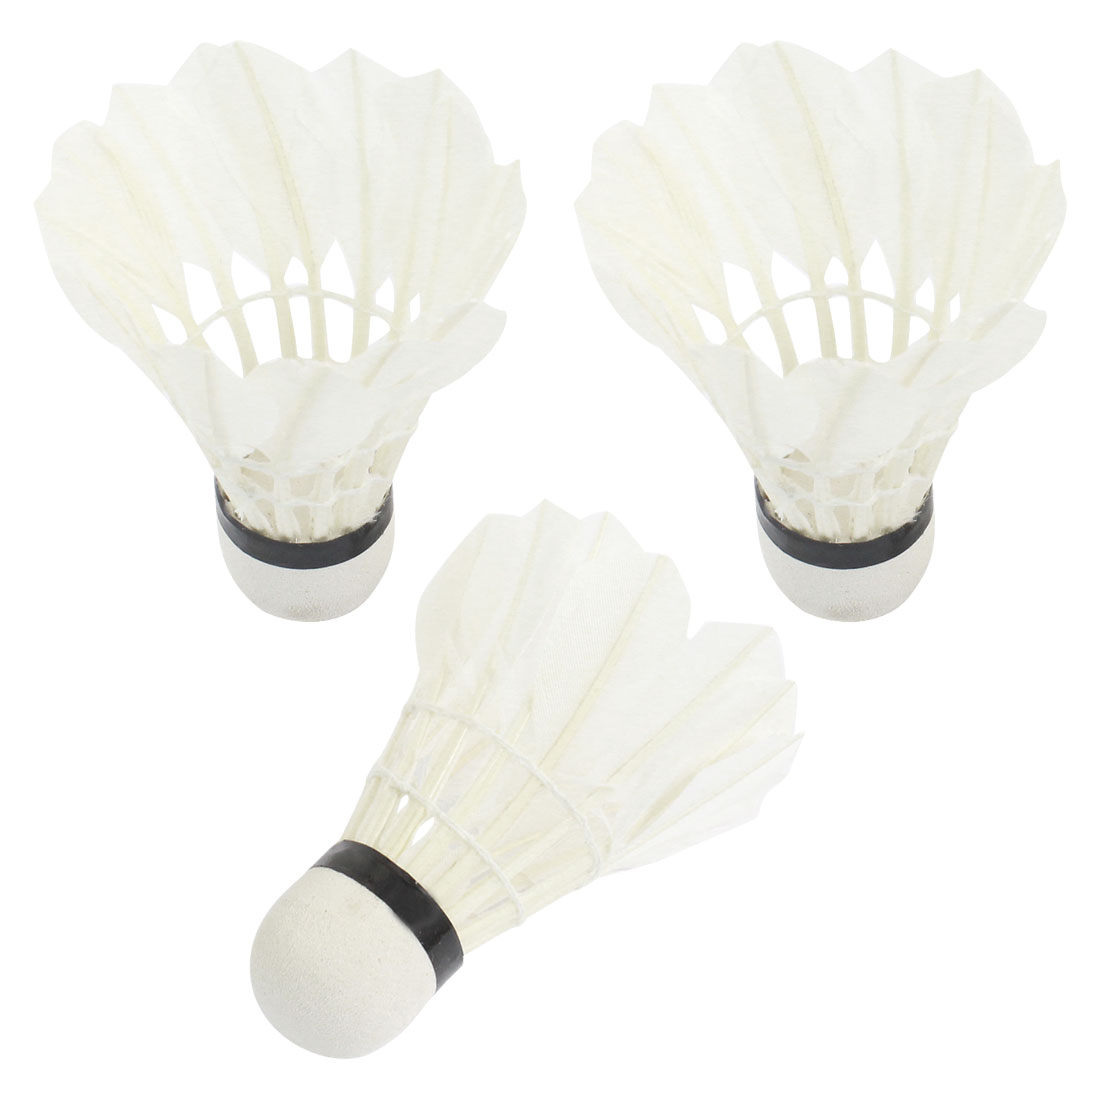 Outdoor Sports Gym Athletic Training White Goose Feather Foam Bottom Shuttlecocks Badminton 3 Pcs